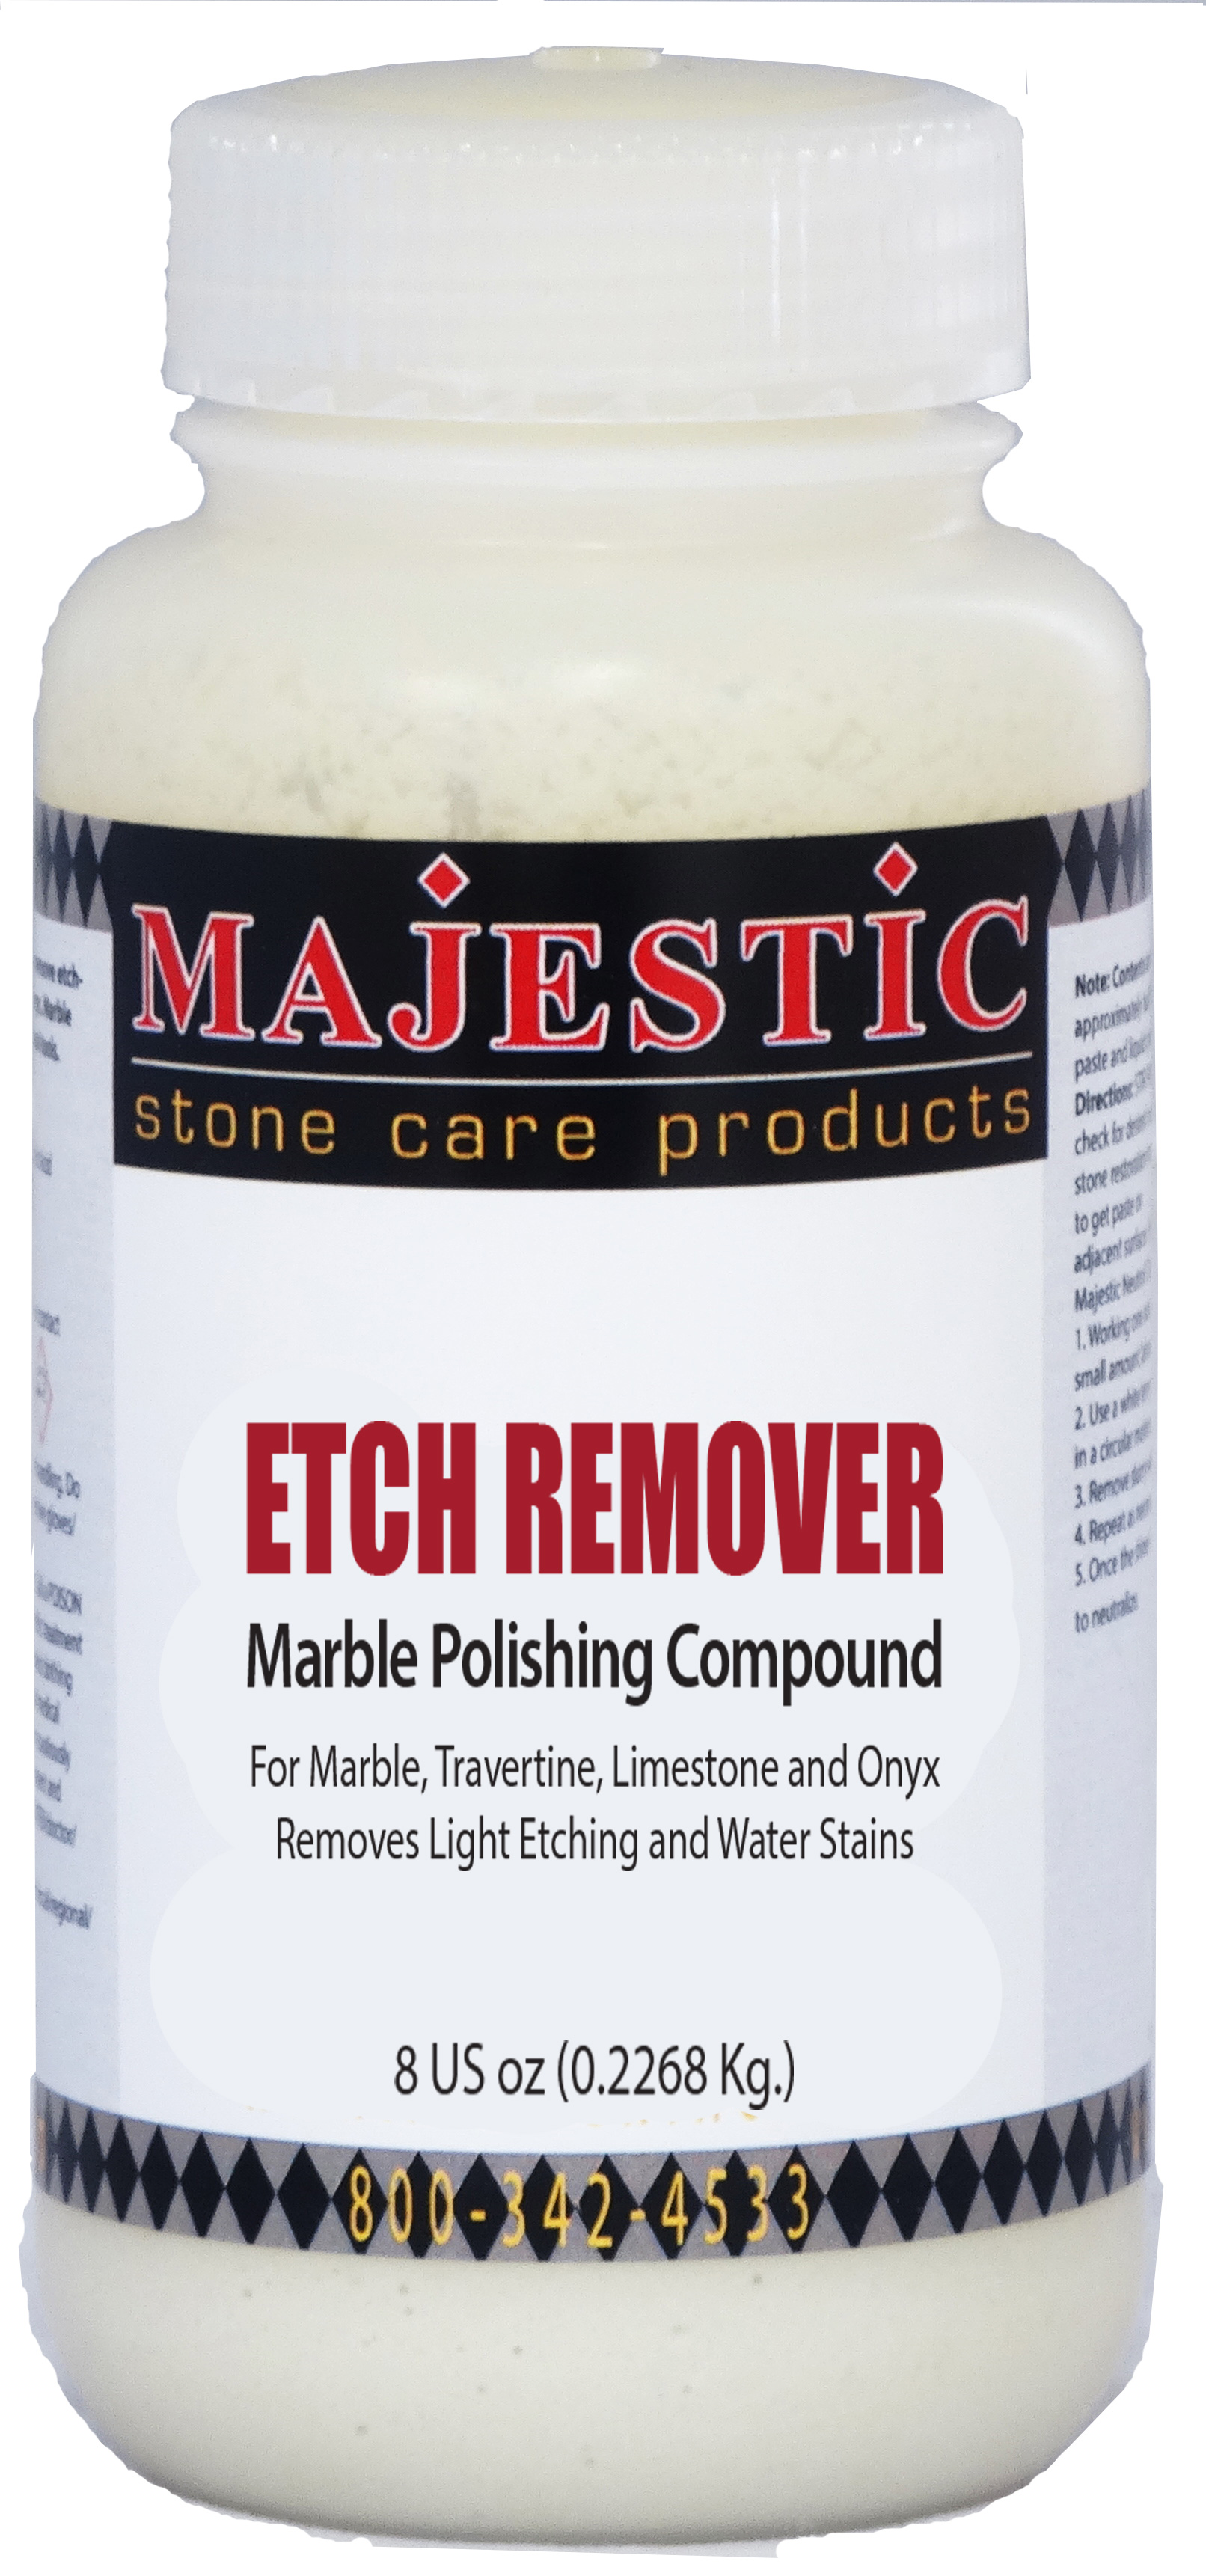 Etch Remover Marble Polishing Compound stonecare signature, marble, polish, polishing, powder, compound, remove, etching, etch, removal, travertine, water, acid, onyx, light, stain, stains, marble, scratches, scratch, watermark, mark, marks, rings, paste, Stonecare PRO Signature ETCH REMOVER, Majestic etch remover, water ring, marble water spot remover, 5x polishing powder, dull spot, restore shine to your polished marble, parish supply, vmc tac, rocket supply, mb stone, gran quartz, marble scratch repair, water stain, easy to use, ready to use